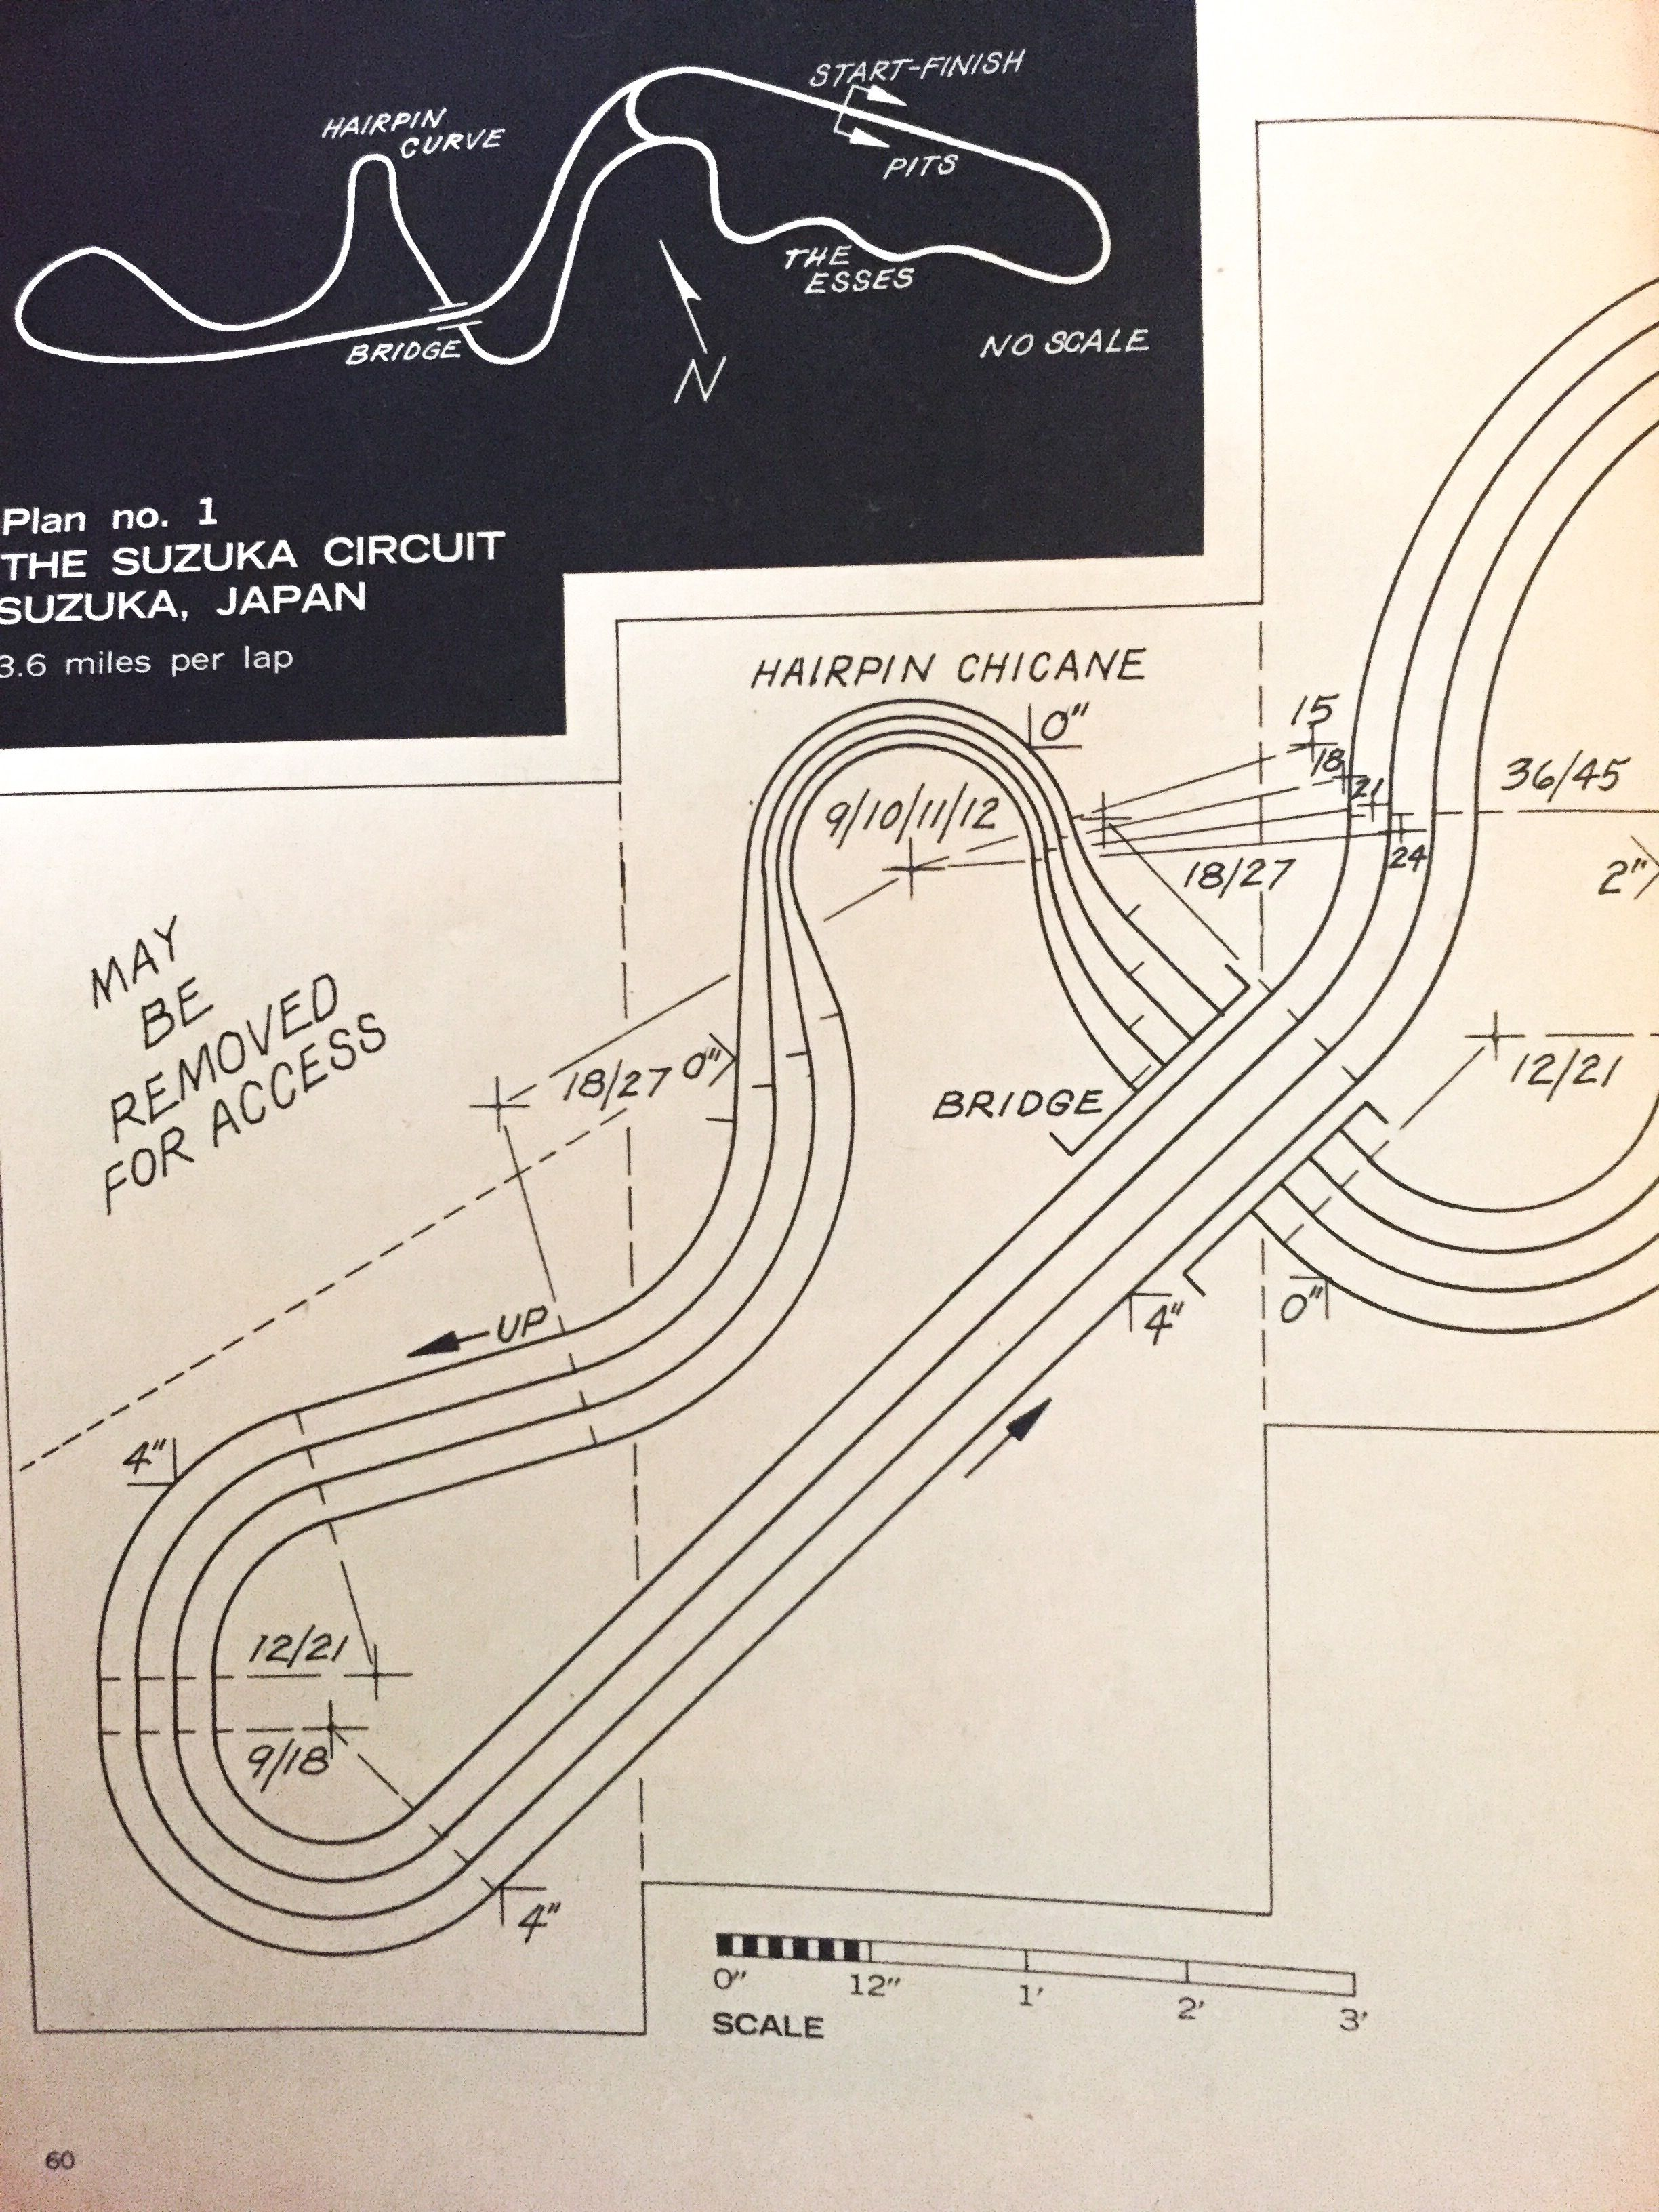 suzuka slot car track plans page 1    model car & track may 1965